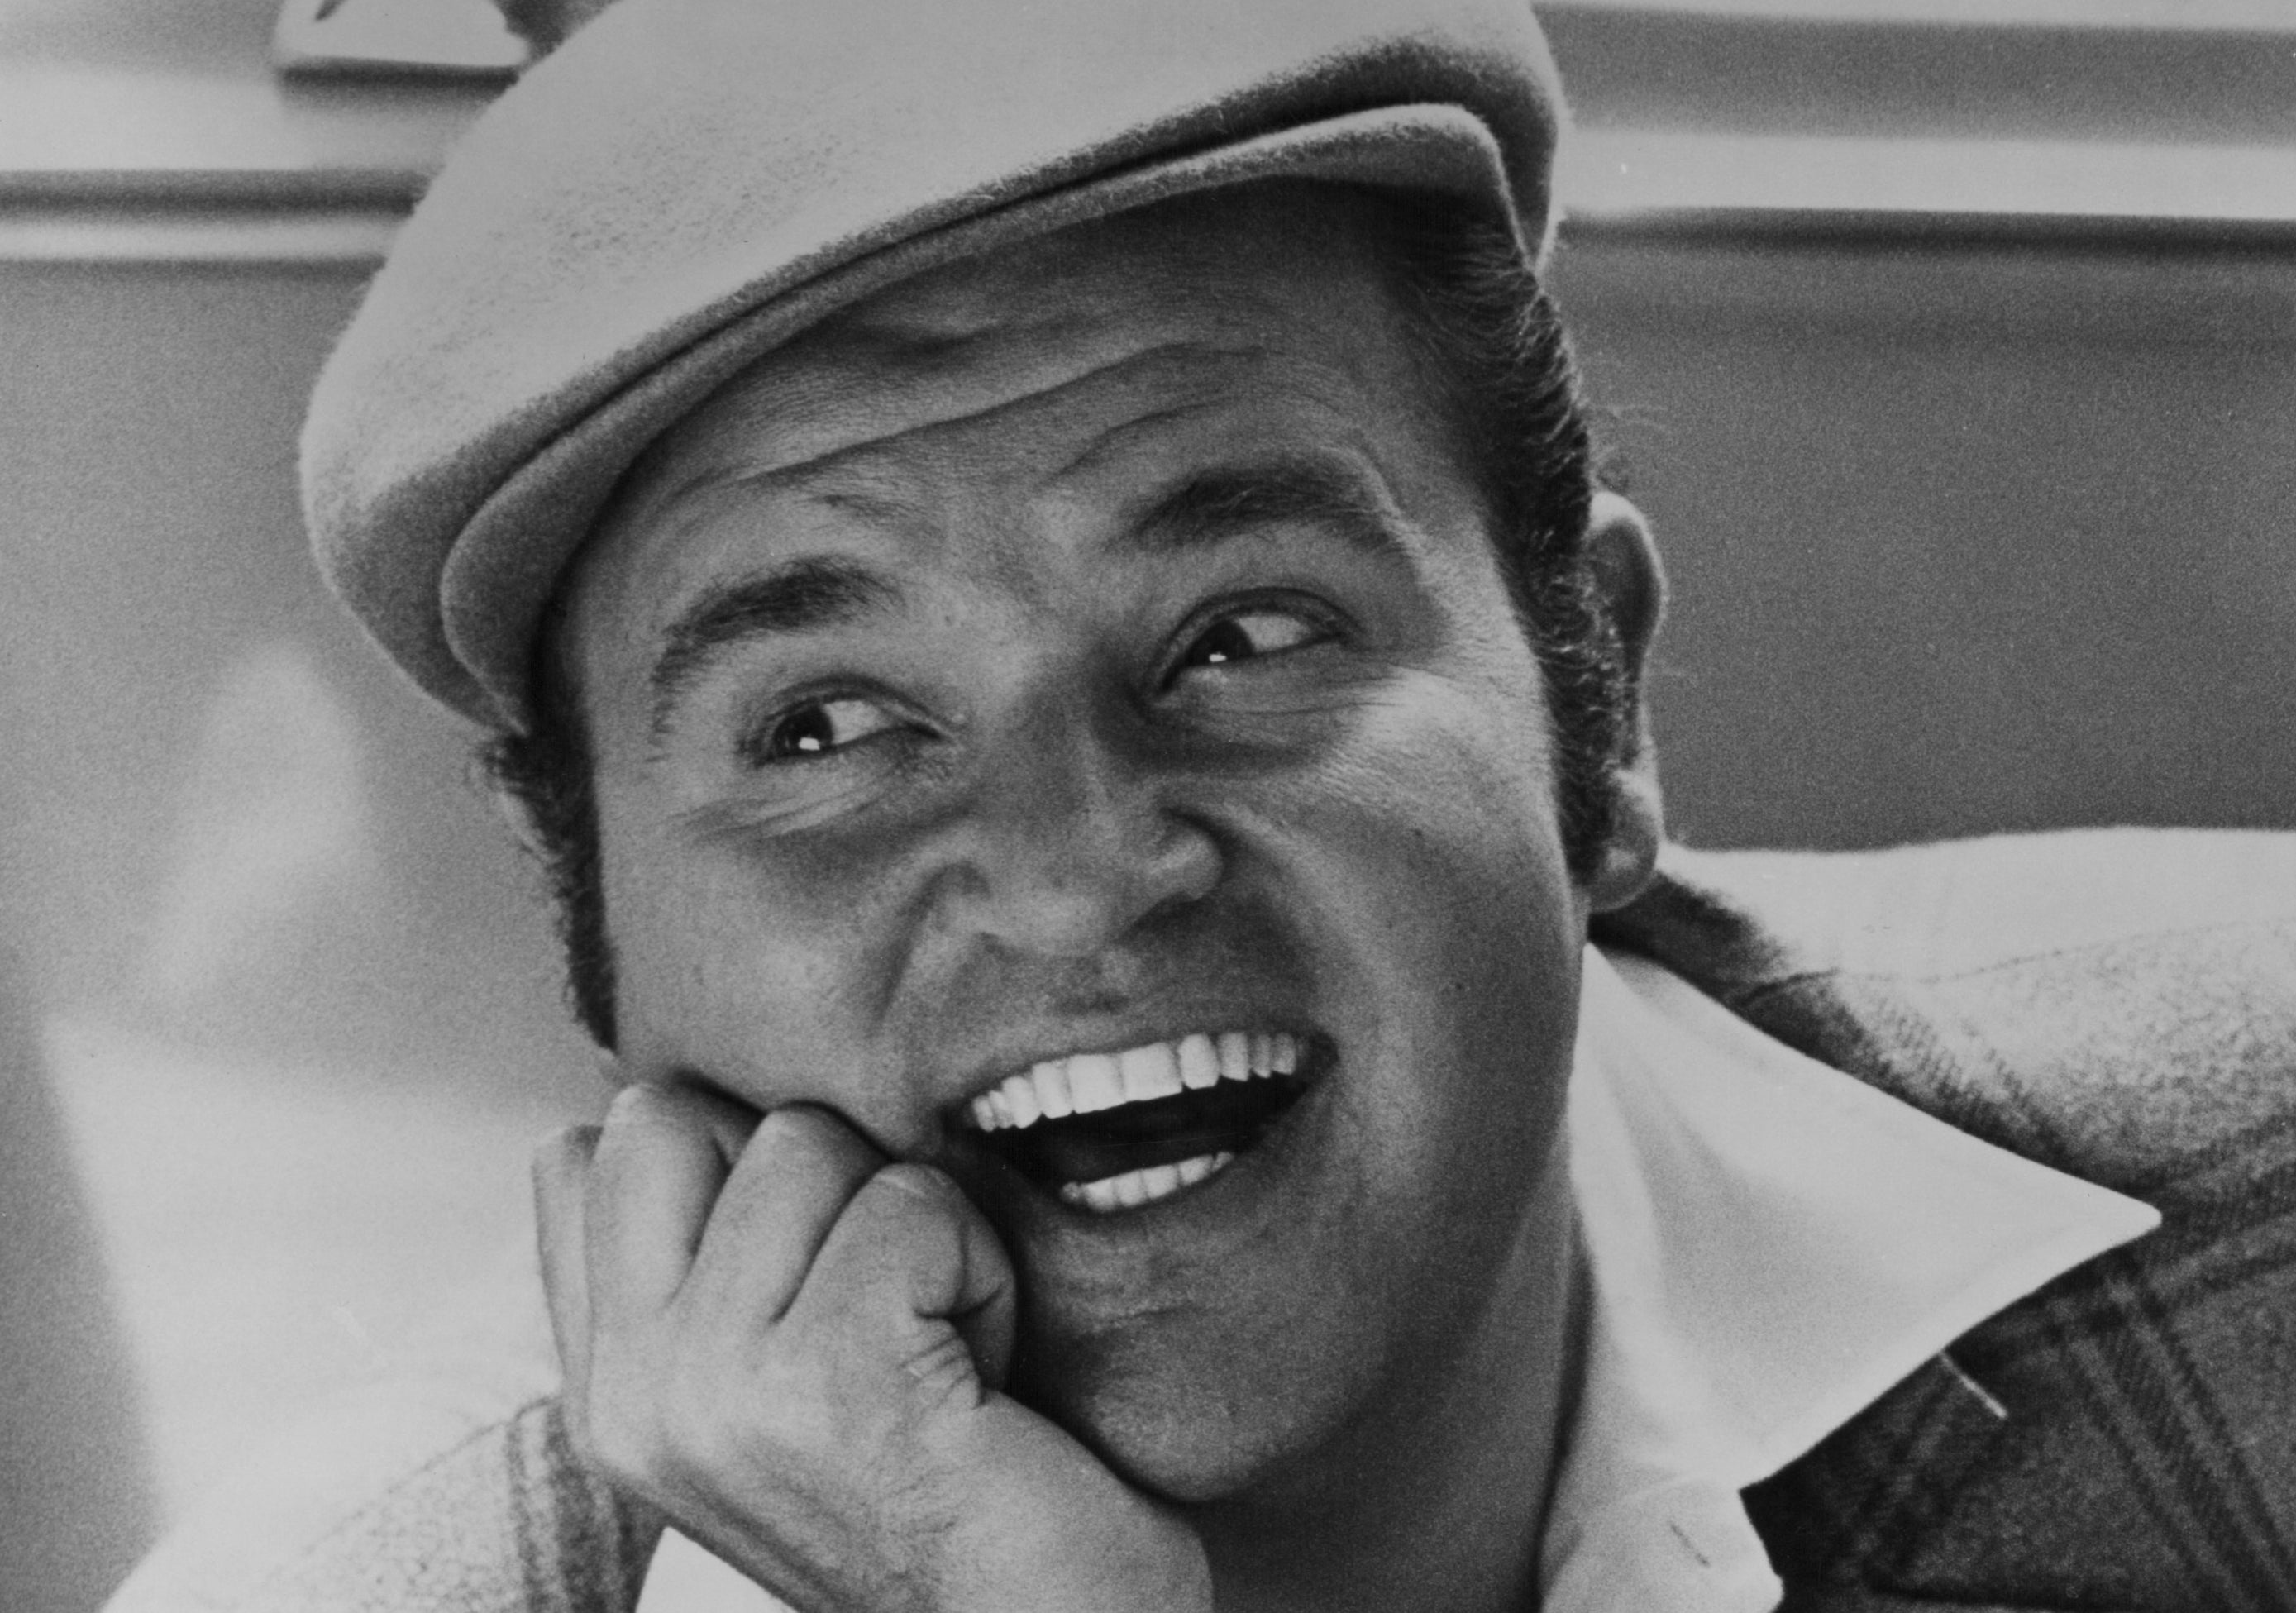 Black-and-white headshot-style photo of Dom DeLuise laughing